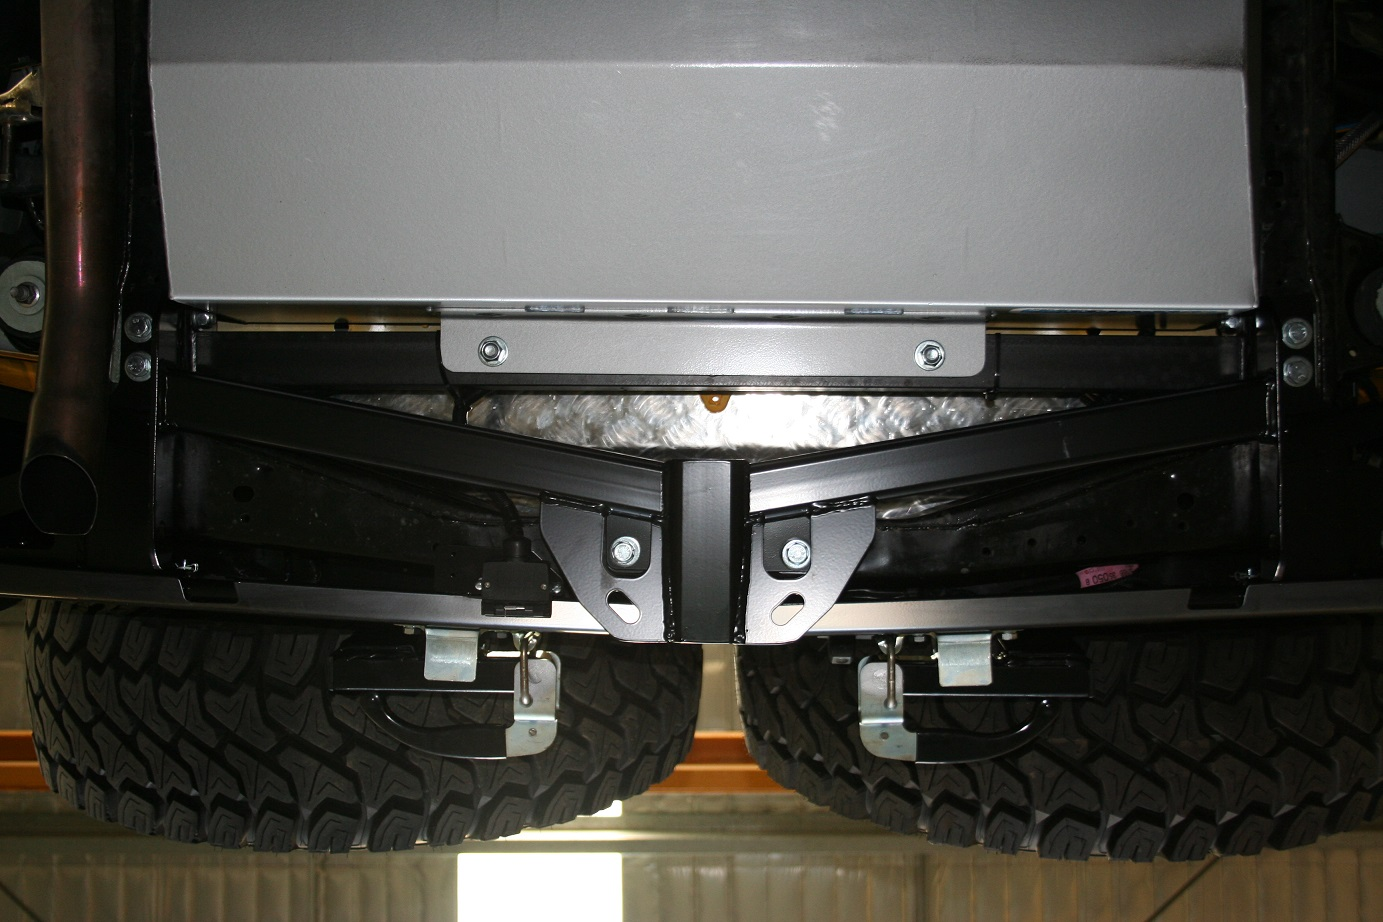 TLCFJCRUISERA_UNDER SIDE VIEW